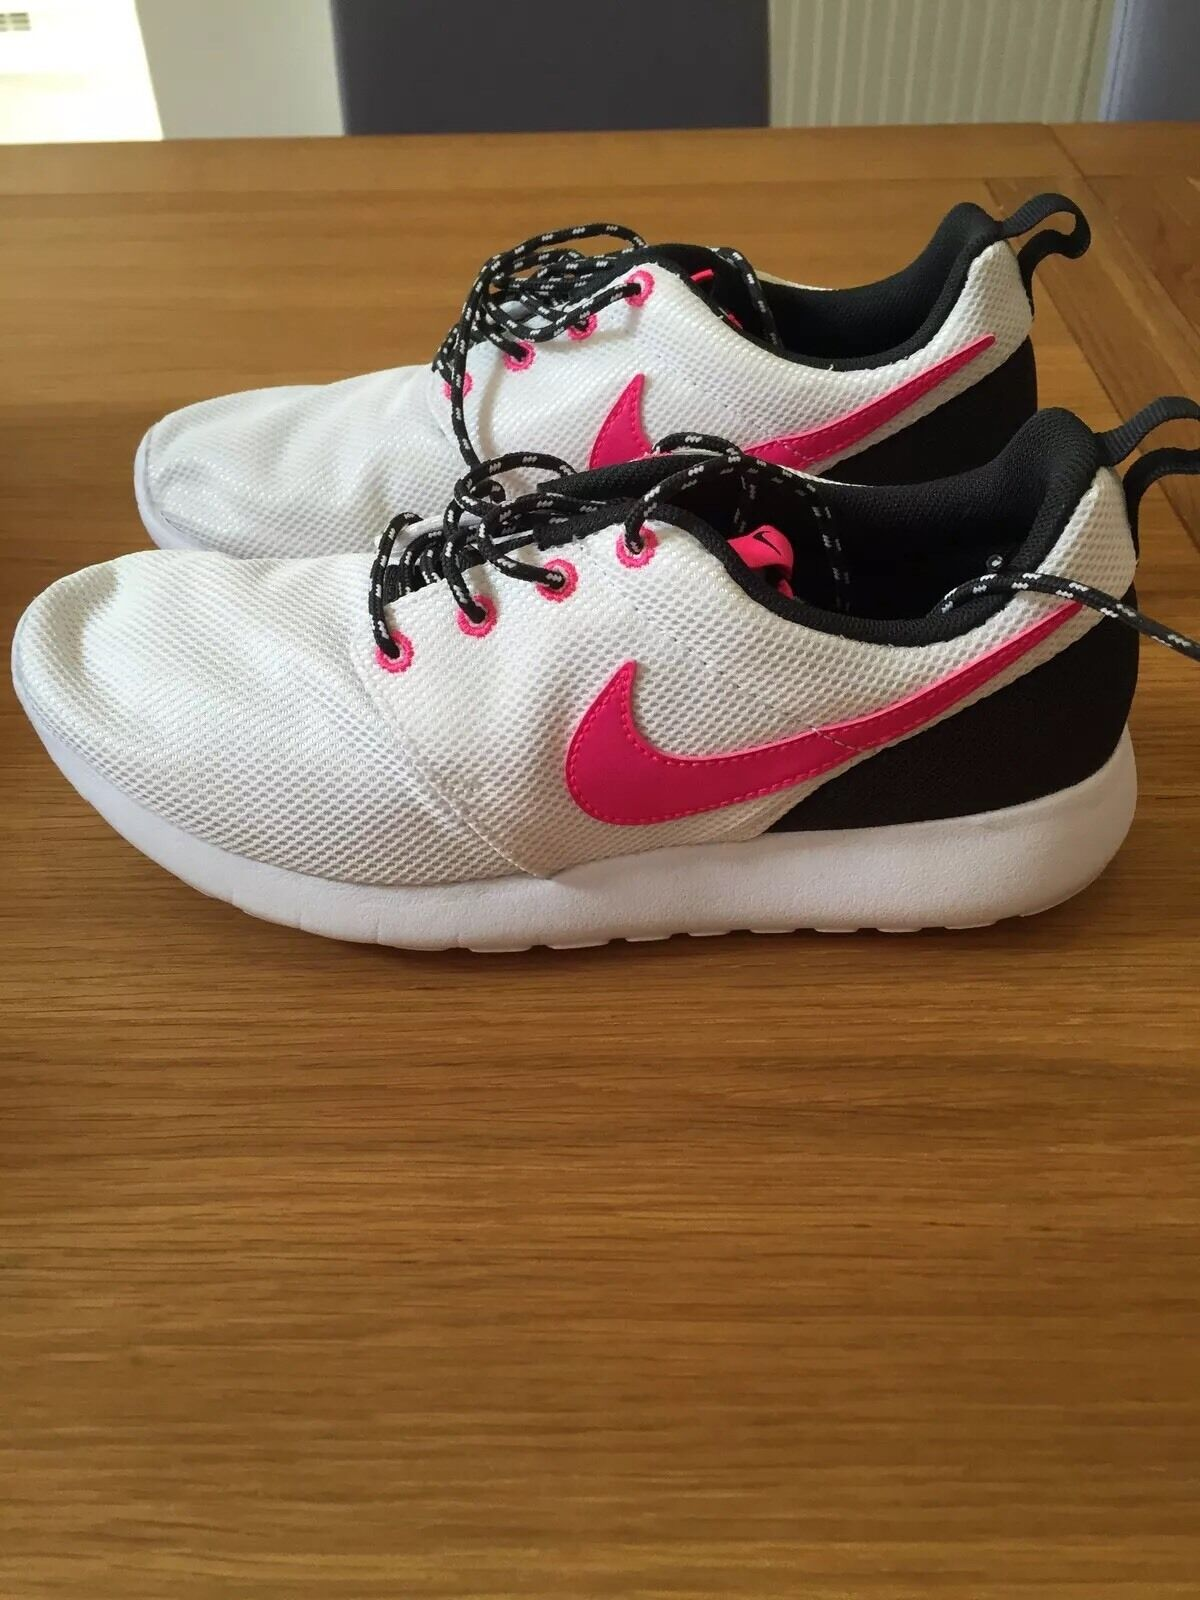 GENUINE Nike Roshe One  in white pink and black size 5.5 or new in box Brand discount